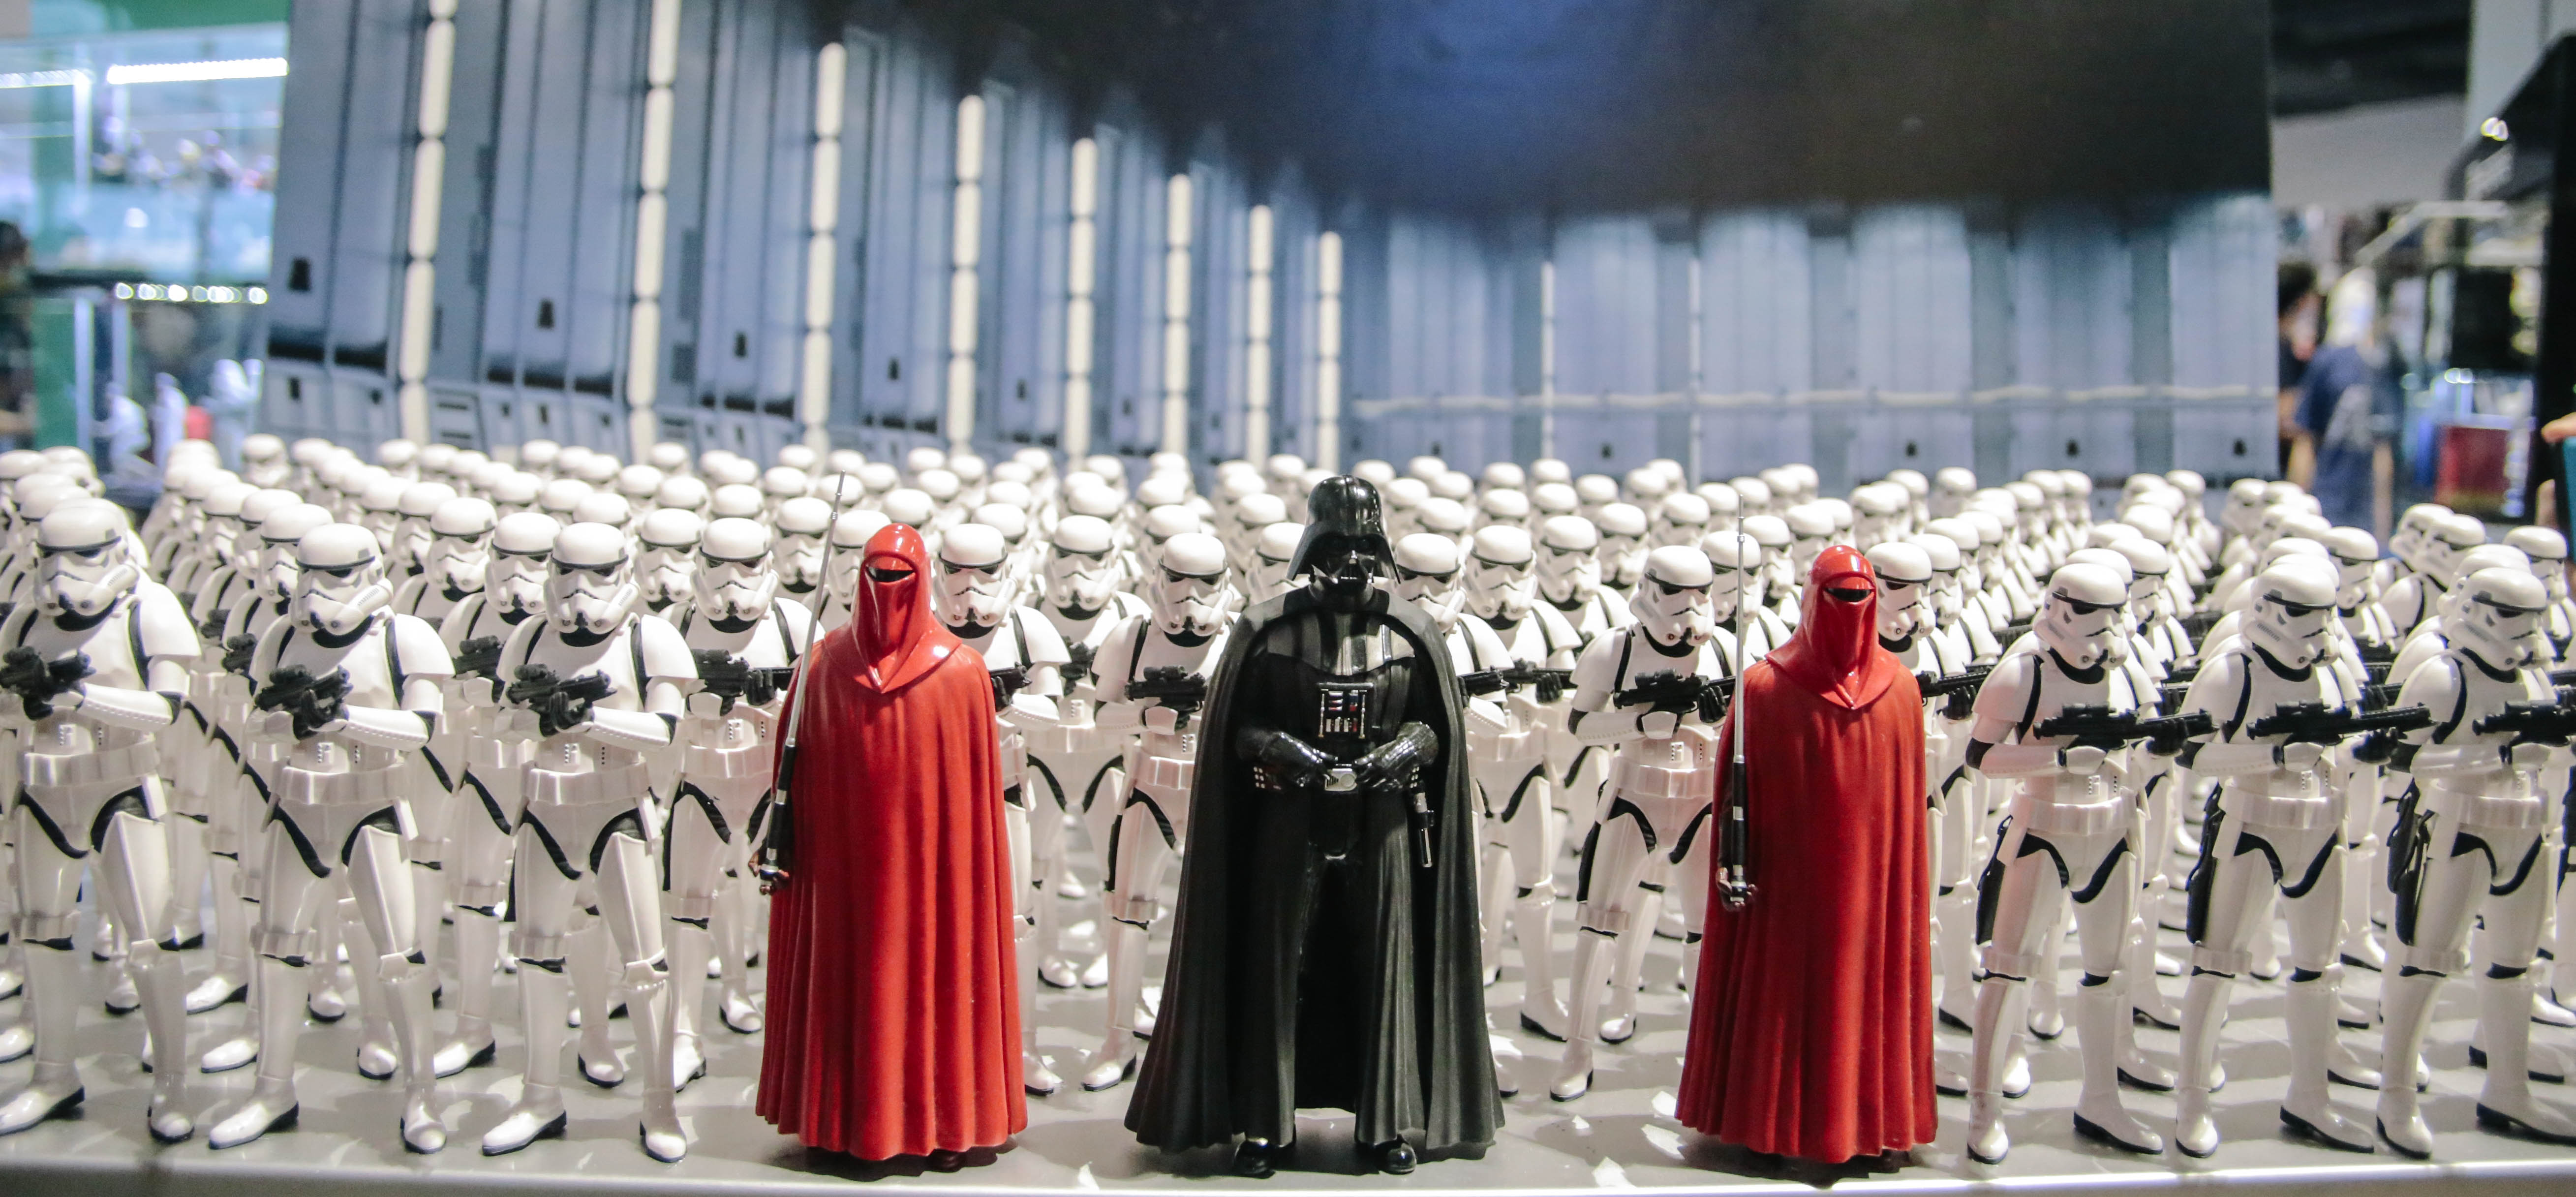 Darth Vader, Imperial Guards, and Stormtroopers. Photo by Paolo Abad/Rappler